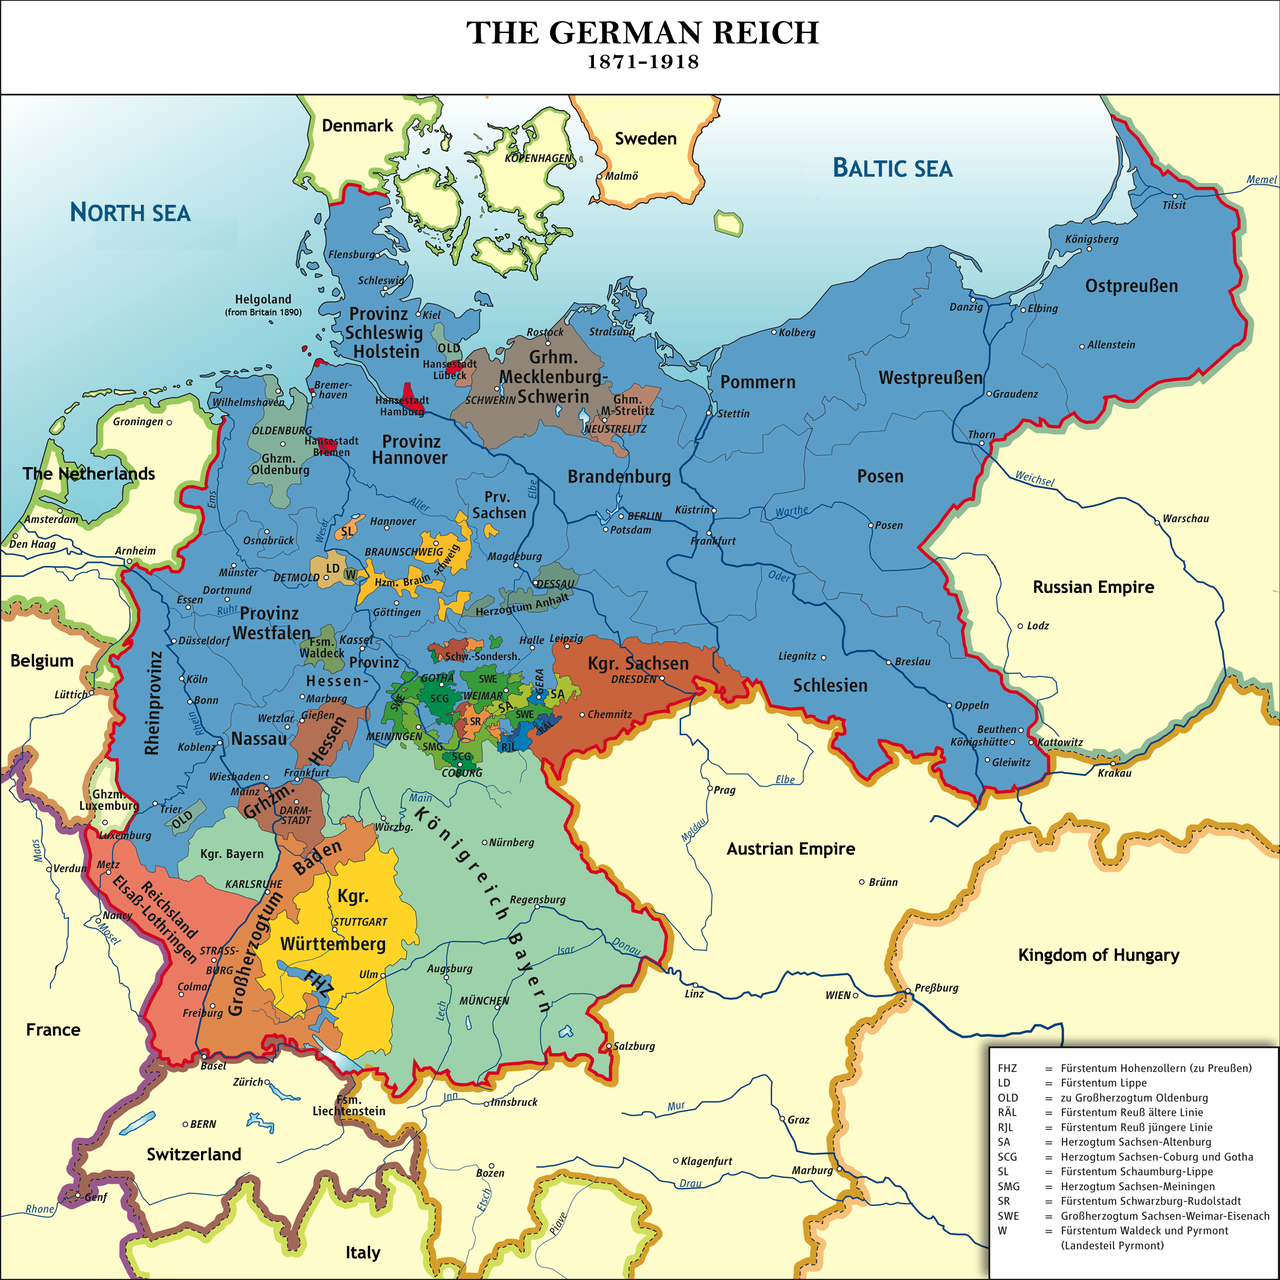 The German Empire (1871–1918), with the Kingdom of Prussia in blue on franco-prussian war, teutonic knights, wilhelm ii, german emperor, kingdom of axum map, prussia today map, crimean war, prussia on world map, union of soviet socialist republics map, united kingdom, king of prussia mall map, east prussia 1945 map, napoleonic wars, german confederation, prussia 1861 map, democratic republic of the congo map, austrian empire, german empire, west prussia map, prussia history map, kingdom of prussia flag, holy roman empire, kingdom of prussia 1815, confederation of the rhine map, east prussia, austro-prussian war, weimar republic, battle of waterloo, kingdom of prussia history, kingdom of denmark map, grand duchy of lithuania map, prussia 1853 map, prussia on a map, prussia flag map, kingdom of prussia coat of arms, unification of germany,